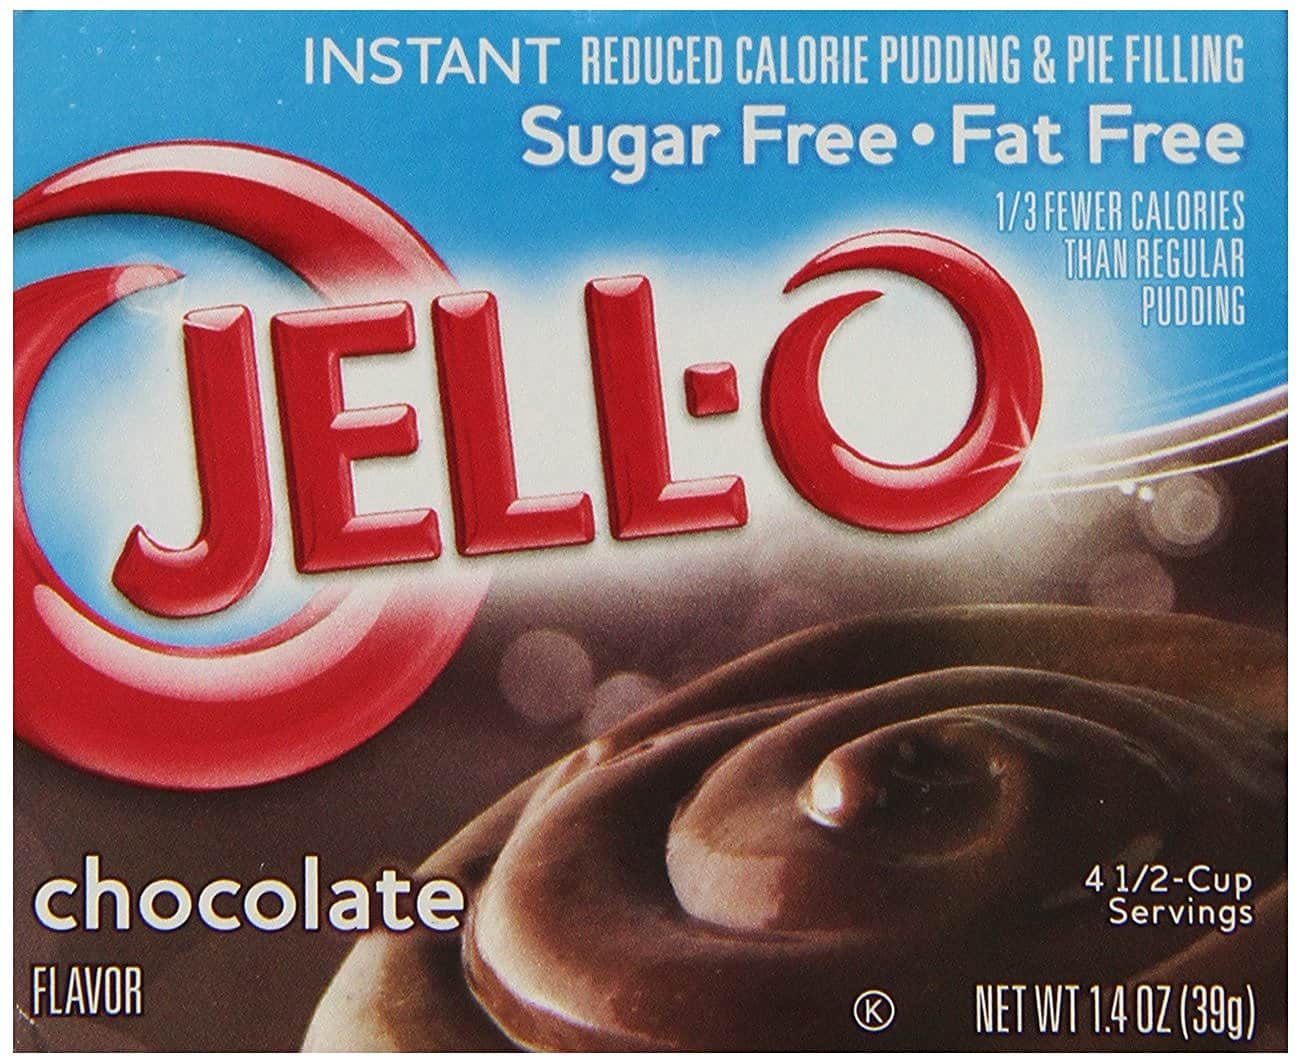 6-Pk 1.4oz Jell-O Sugar-Free Instant Pudding (Chocolate)  $1.35 + Free Shipping